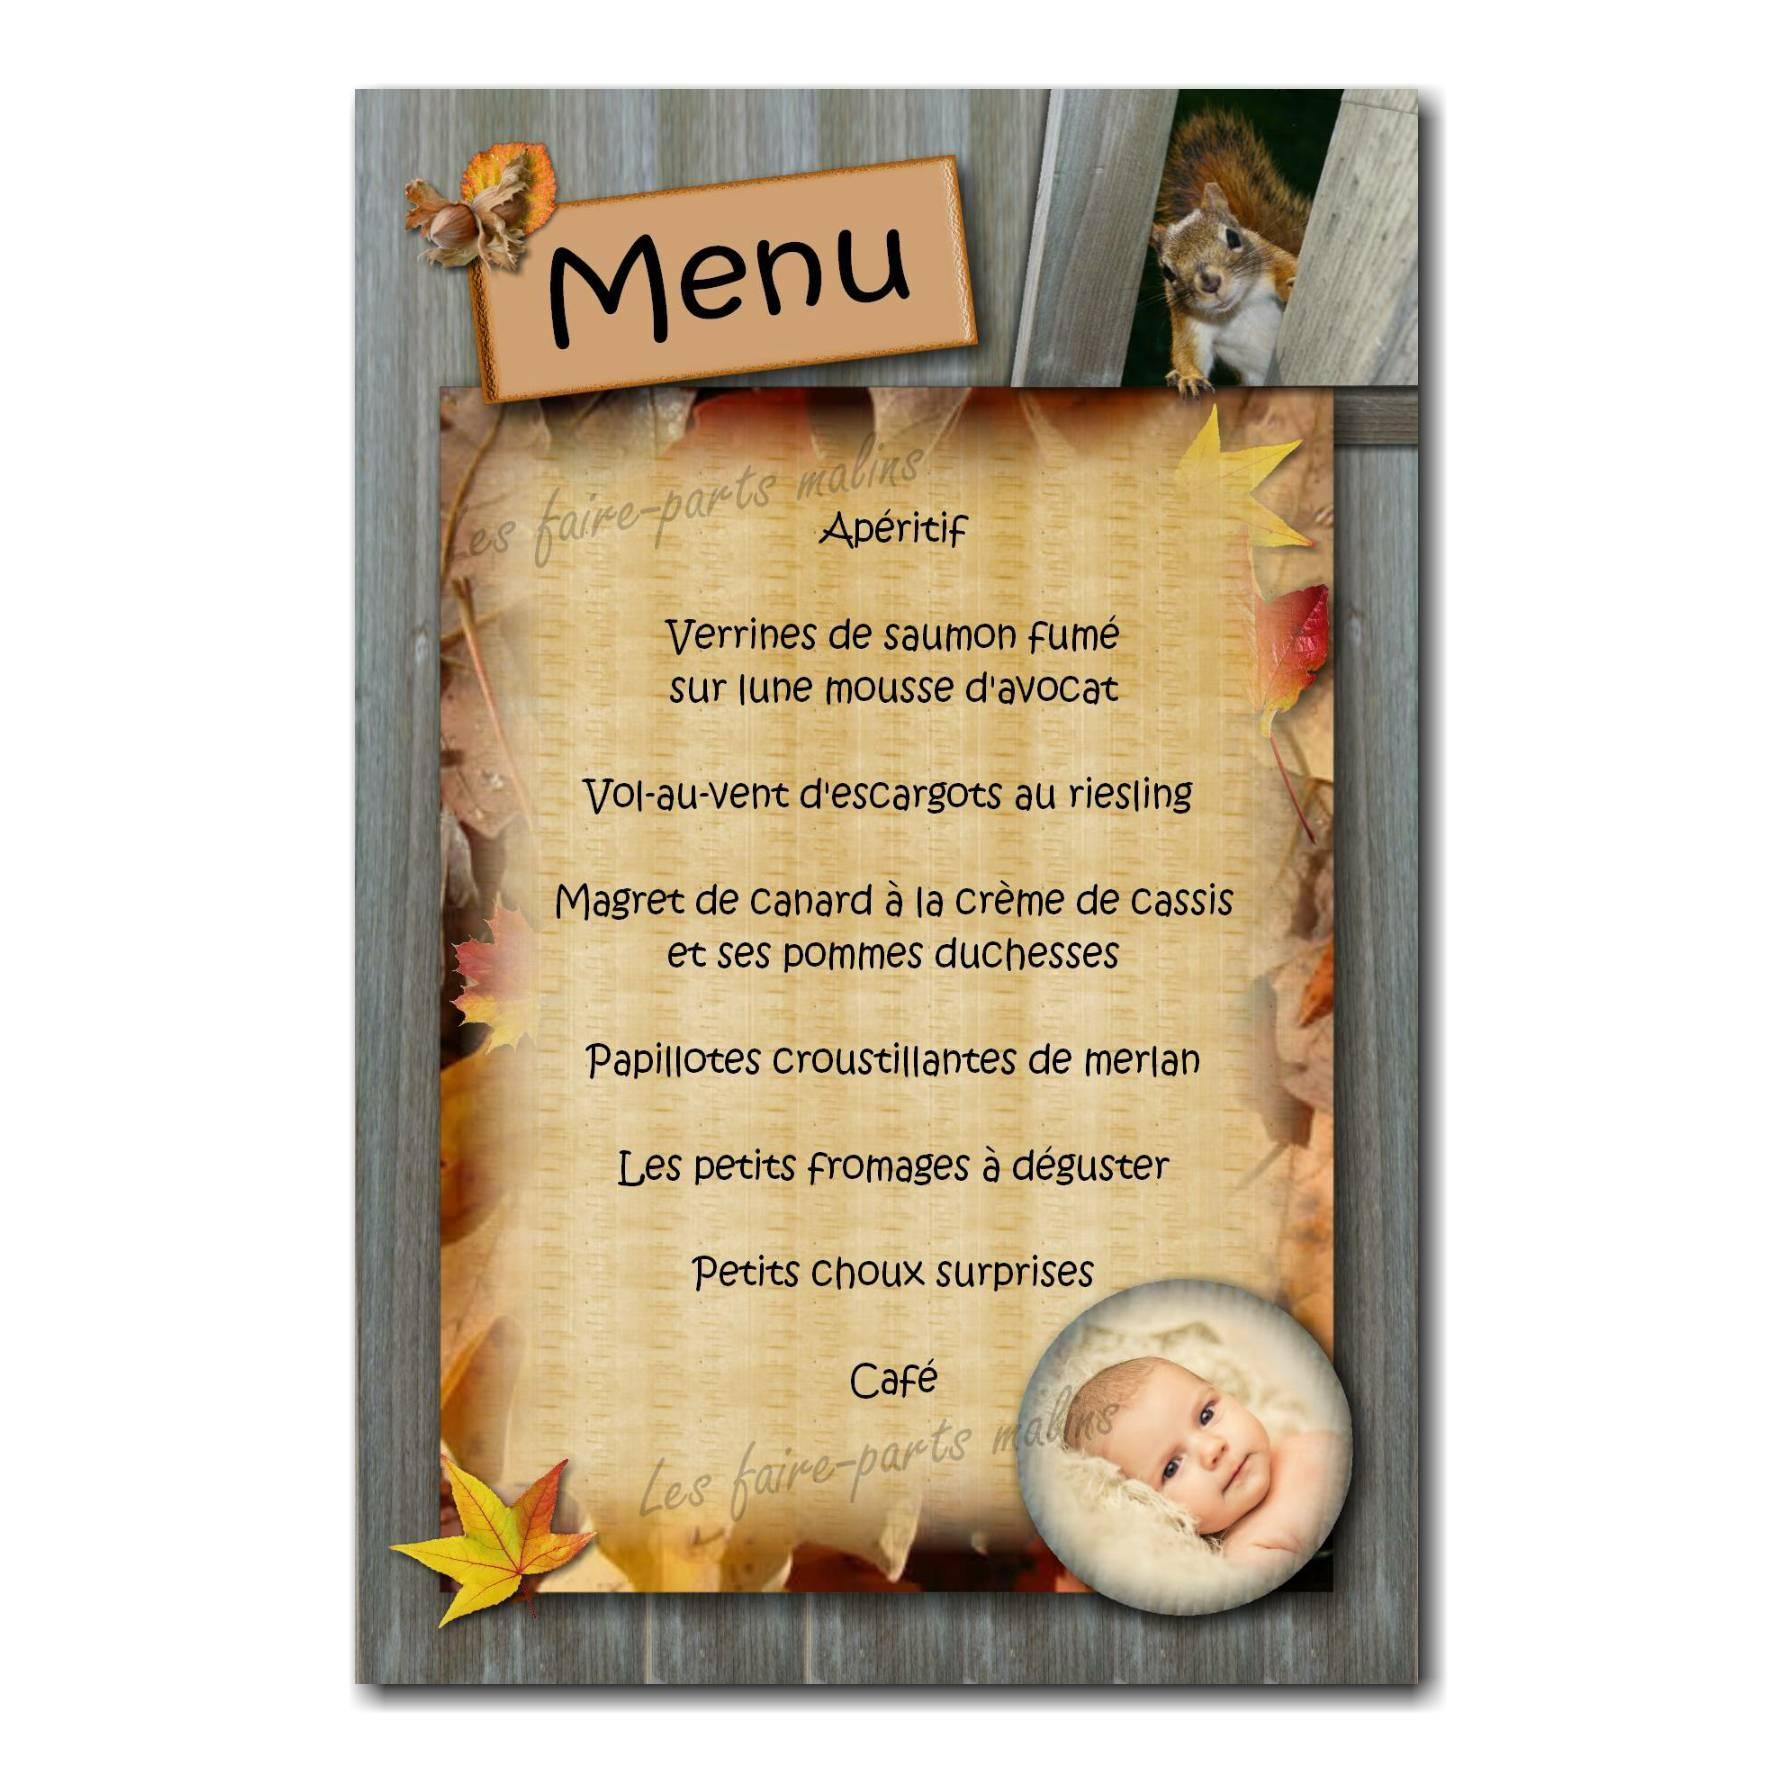 19 mixte menu photo